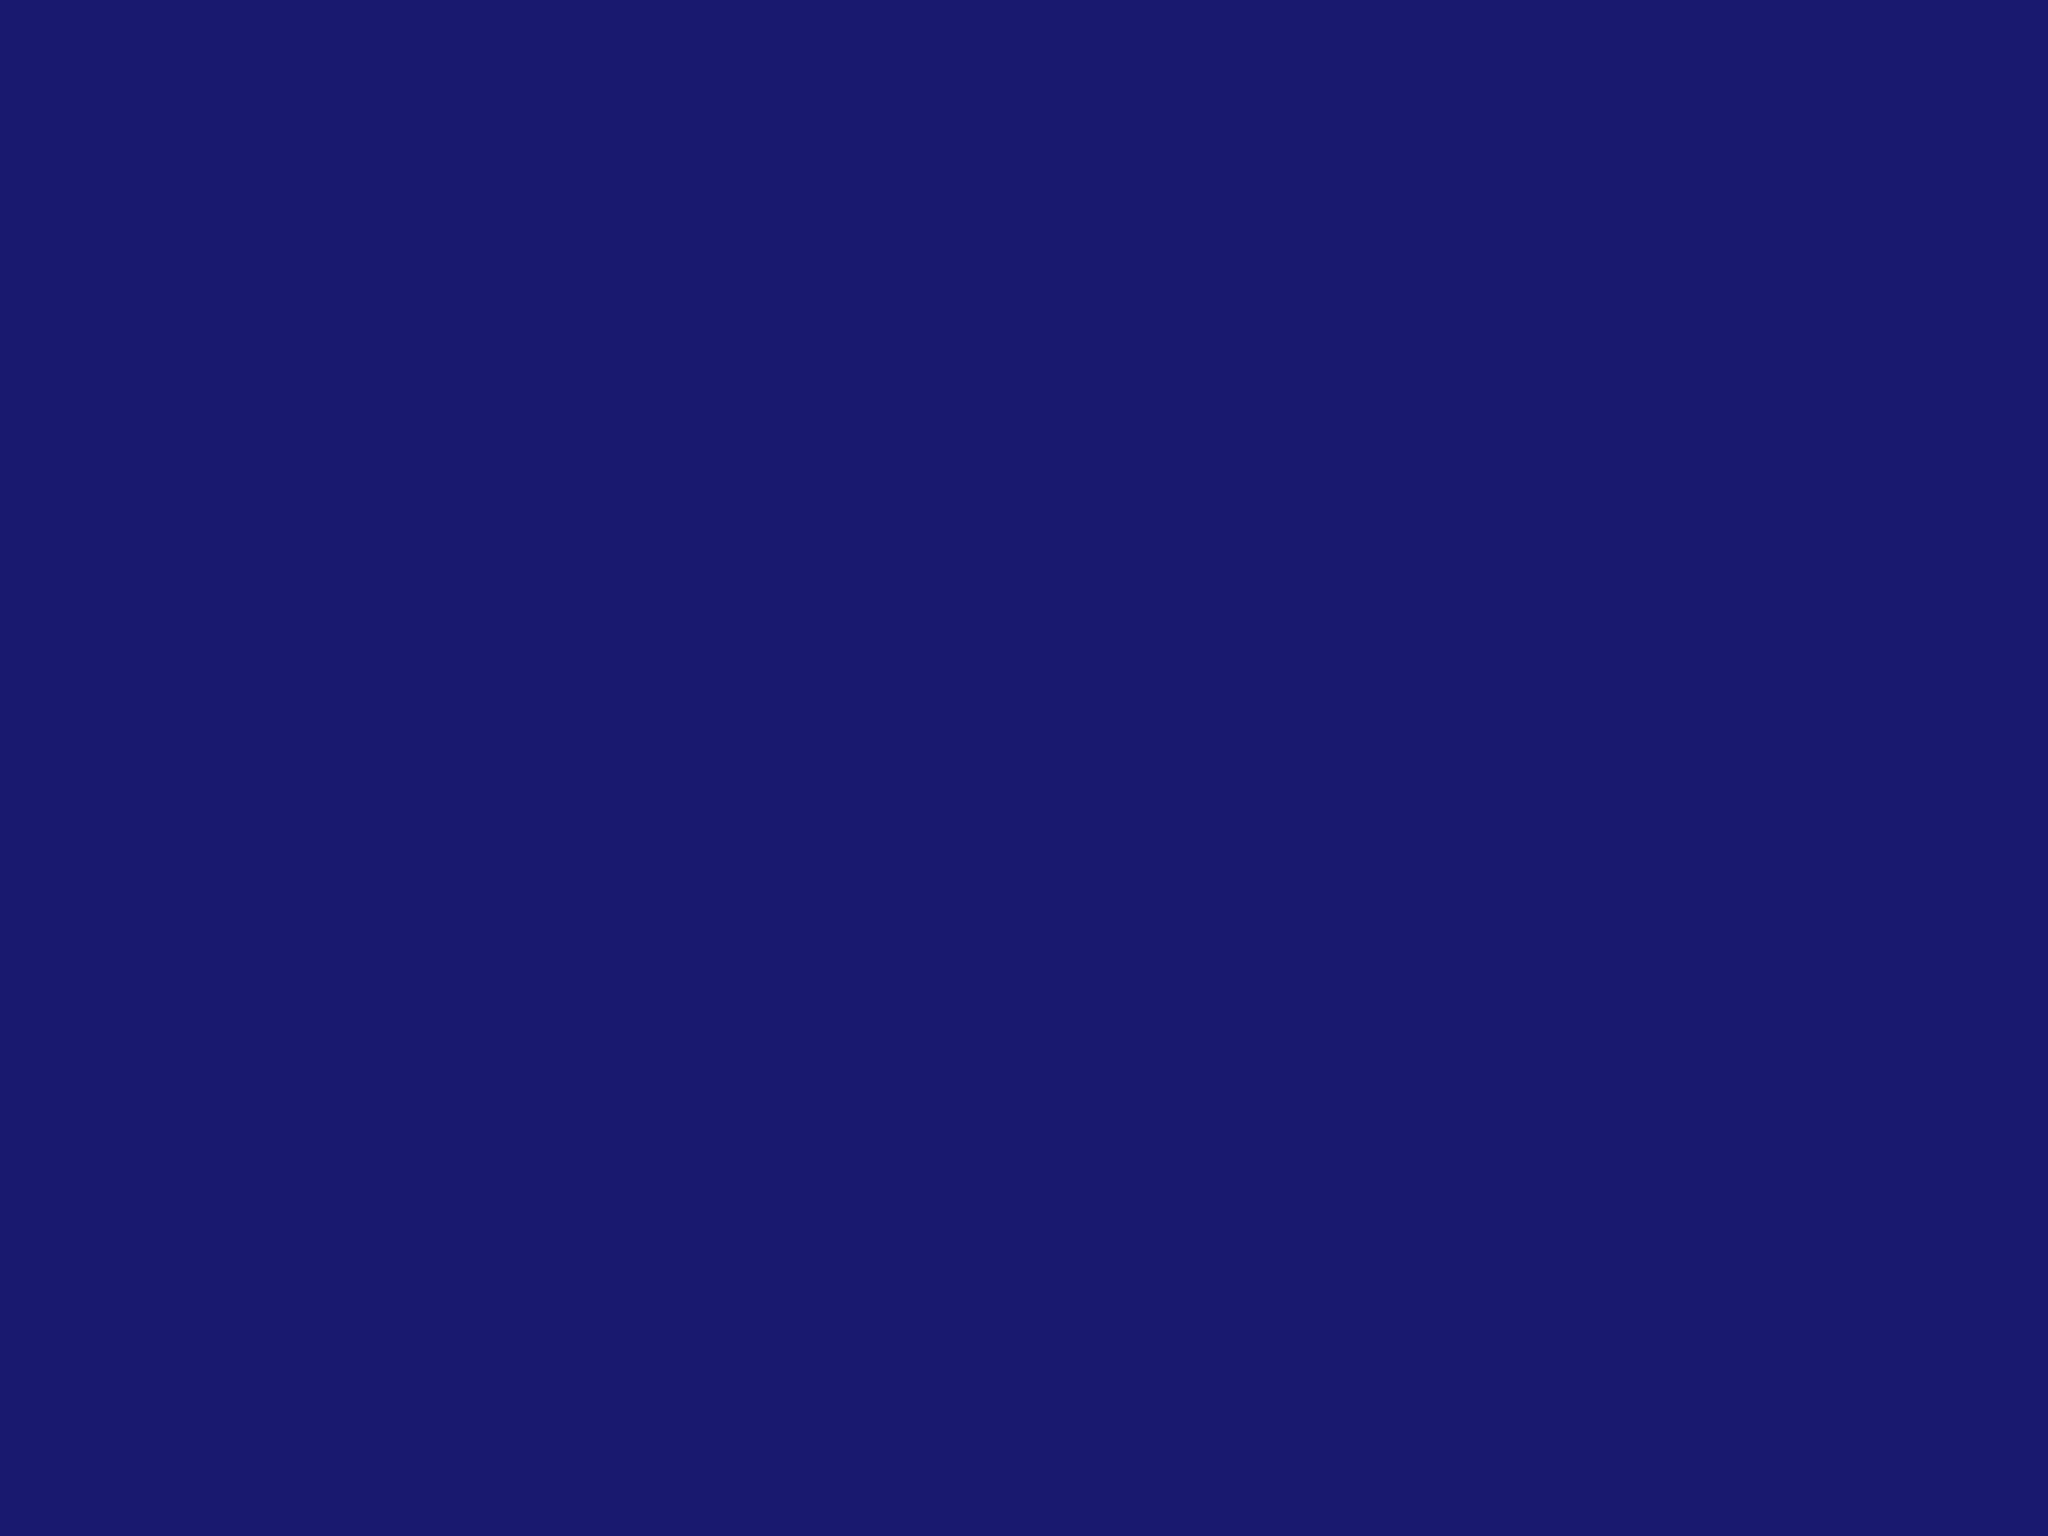 2048x1536 Midnight Blue Solid Color Background